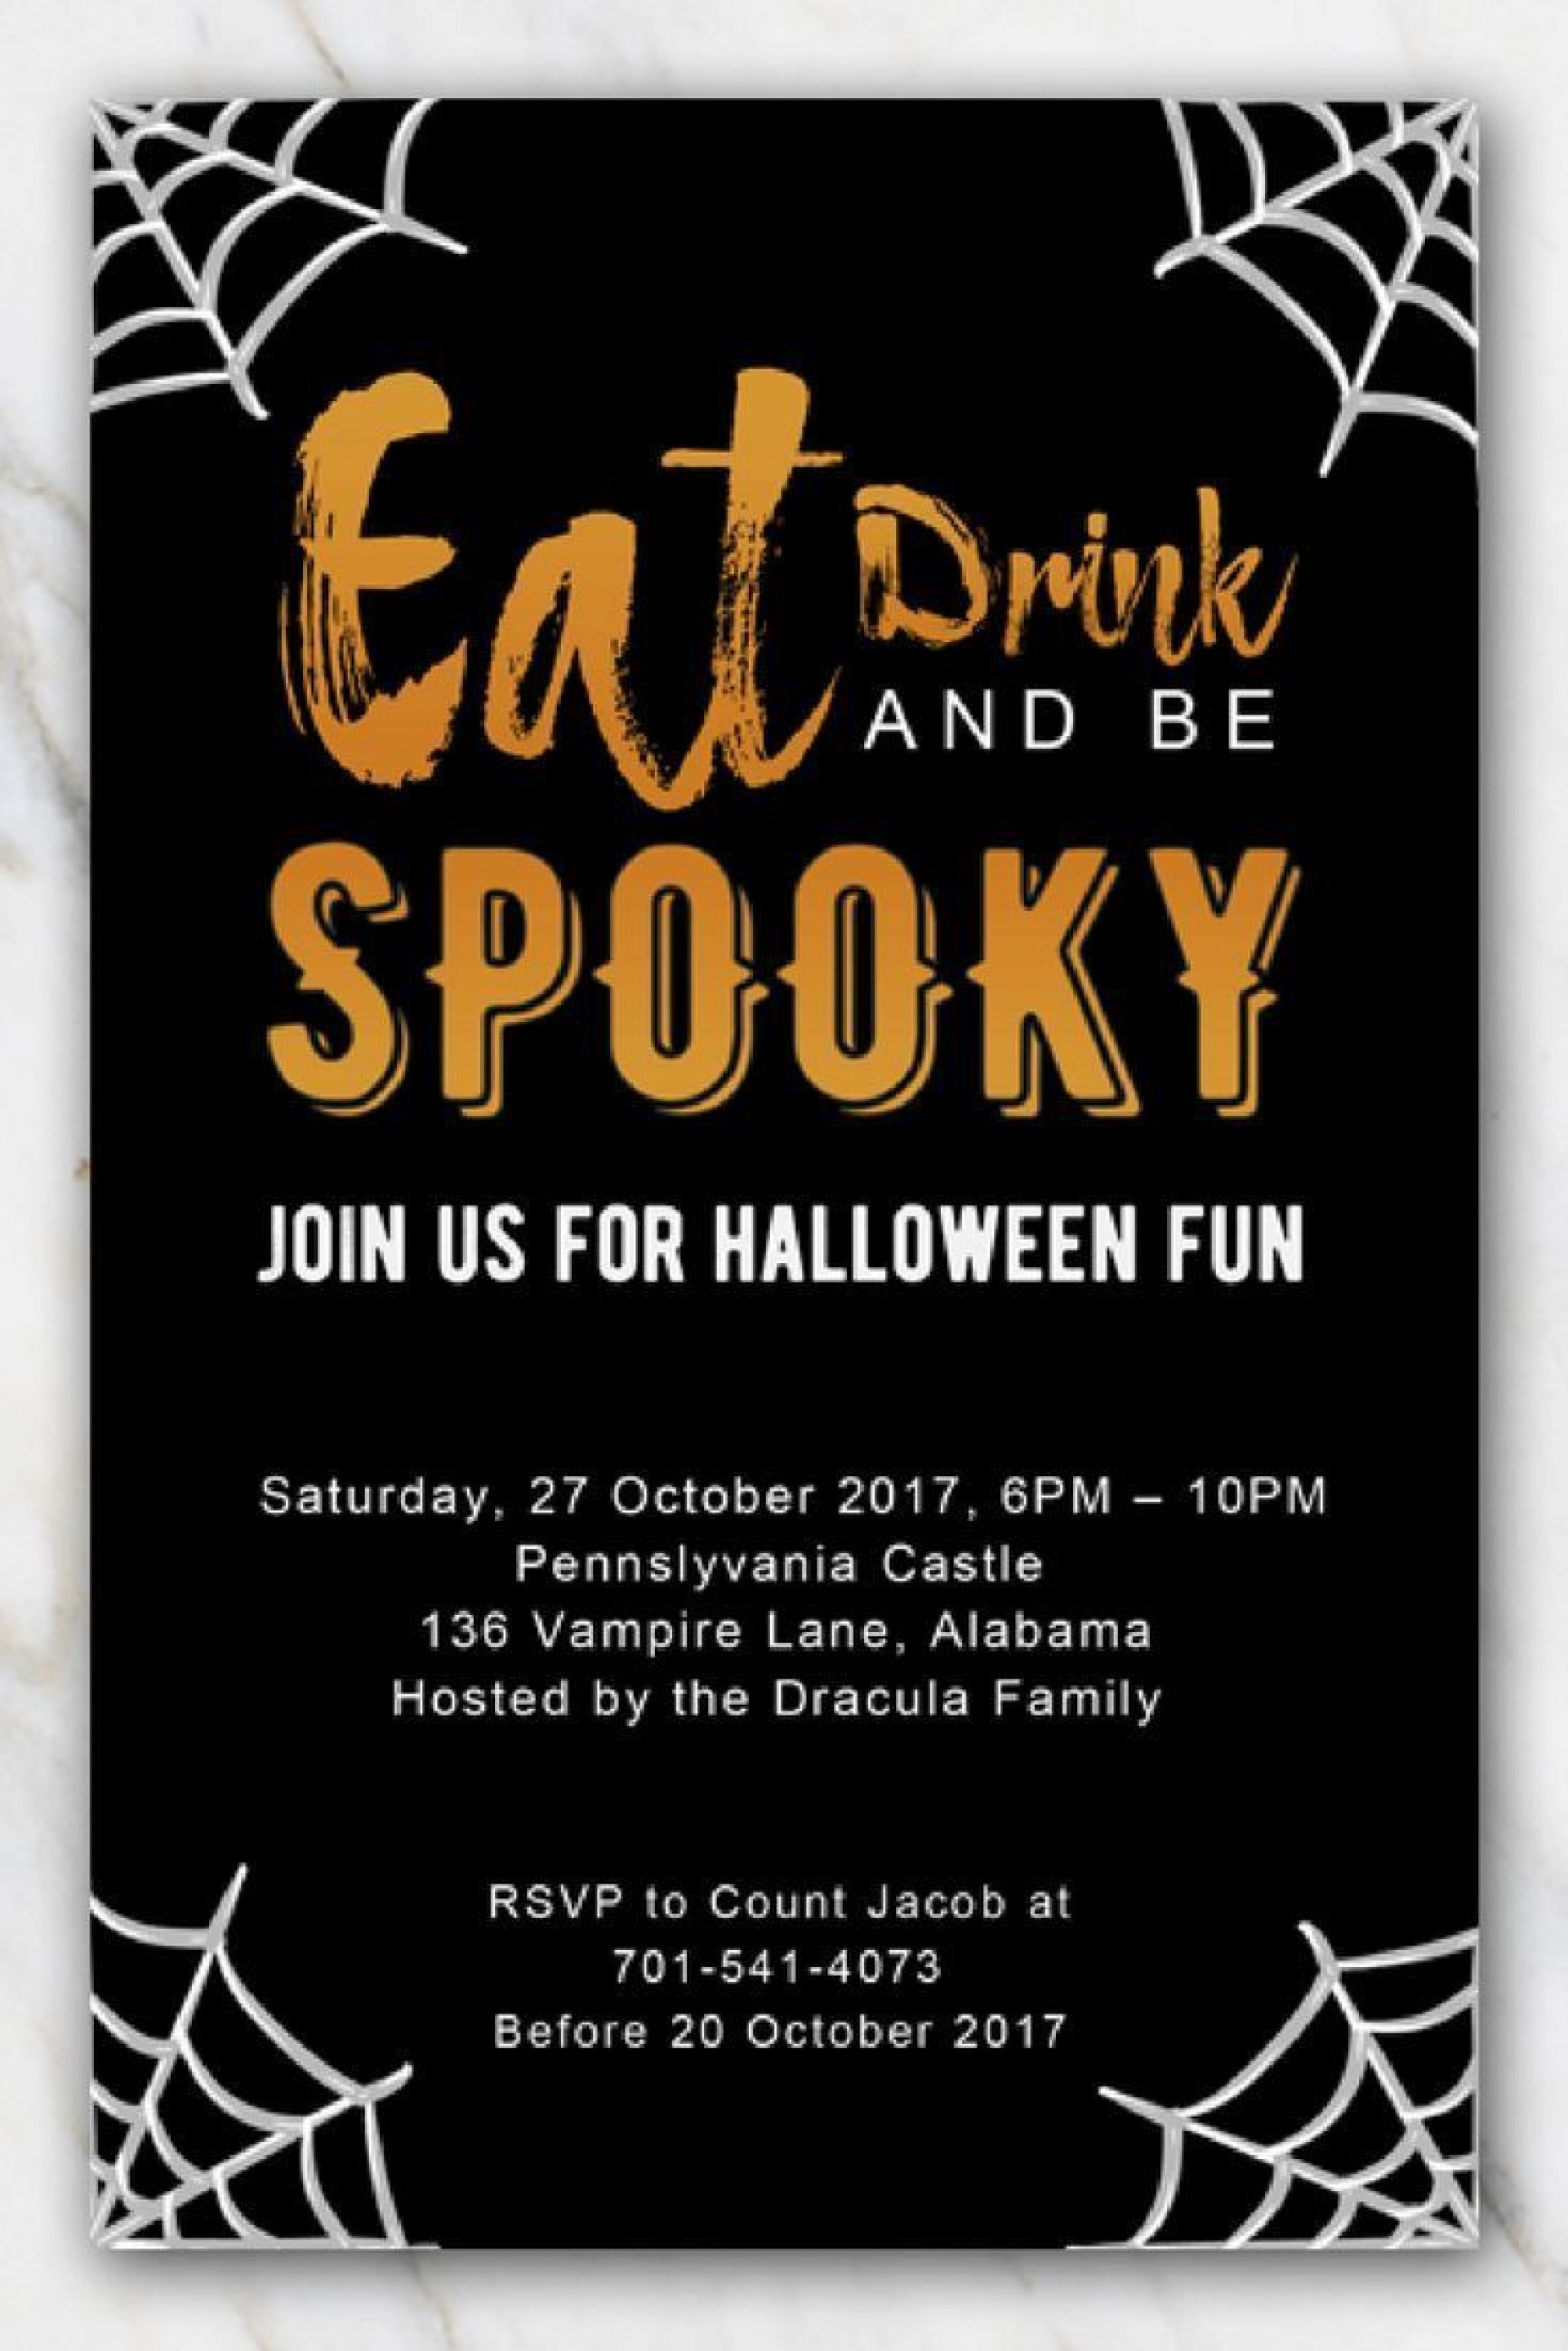 002 Fascinating Halloween Party Invitation Template High Def  Templates Scary Spooky1920